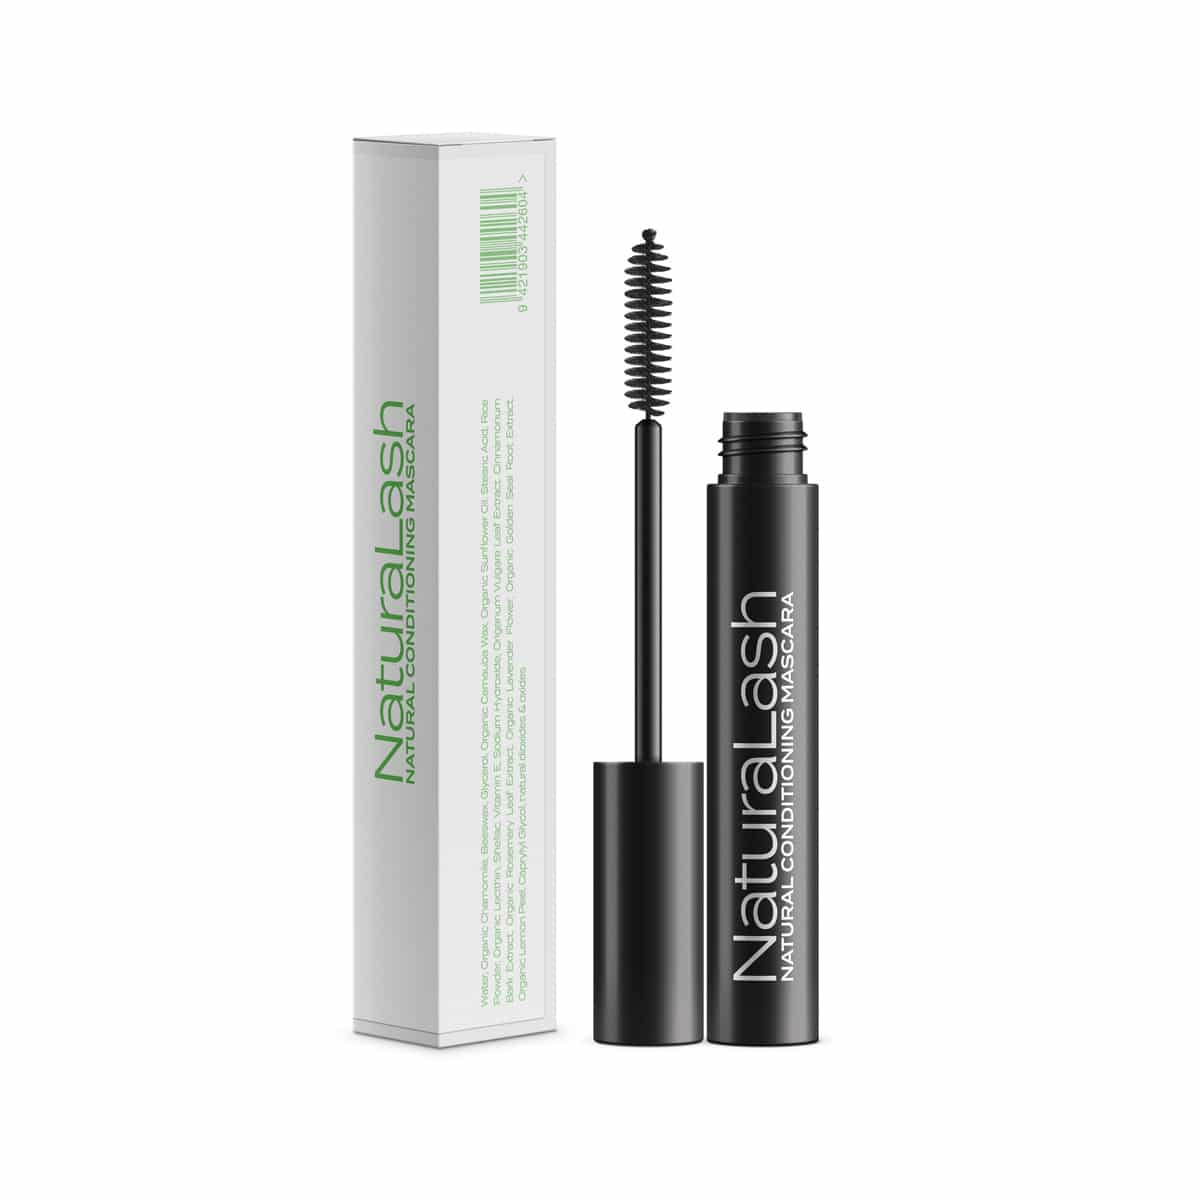 da2123b473f NaturaLash 100% Natural Conditioning Mascara - The Beauty Lounge